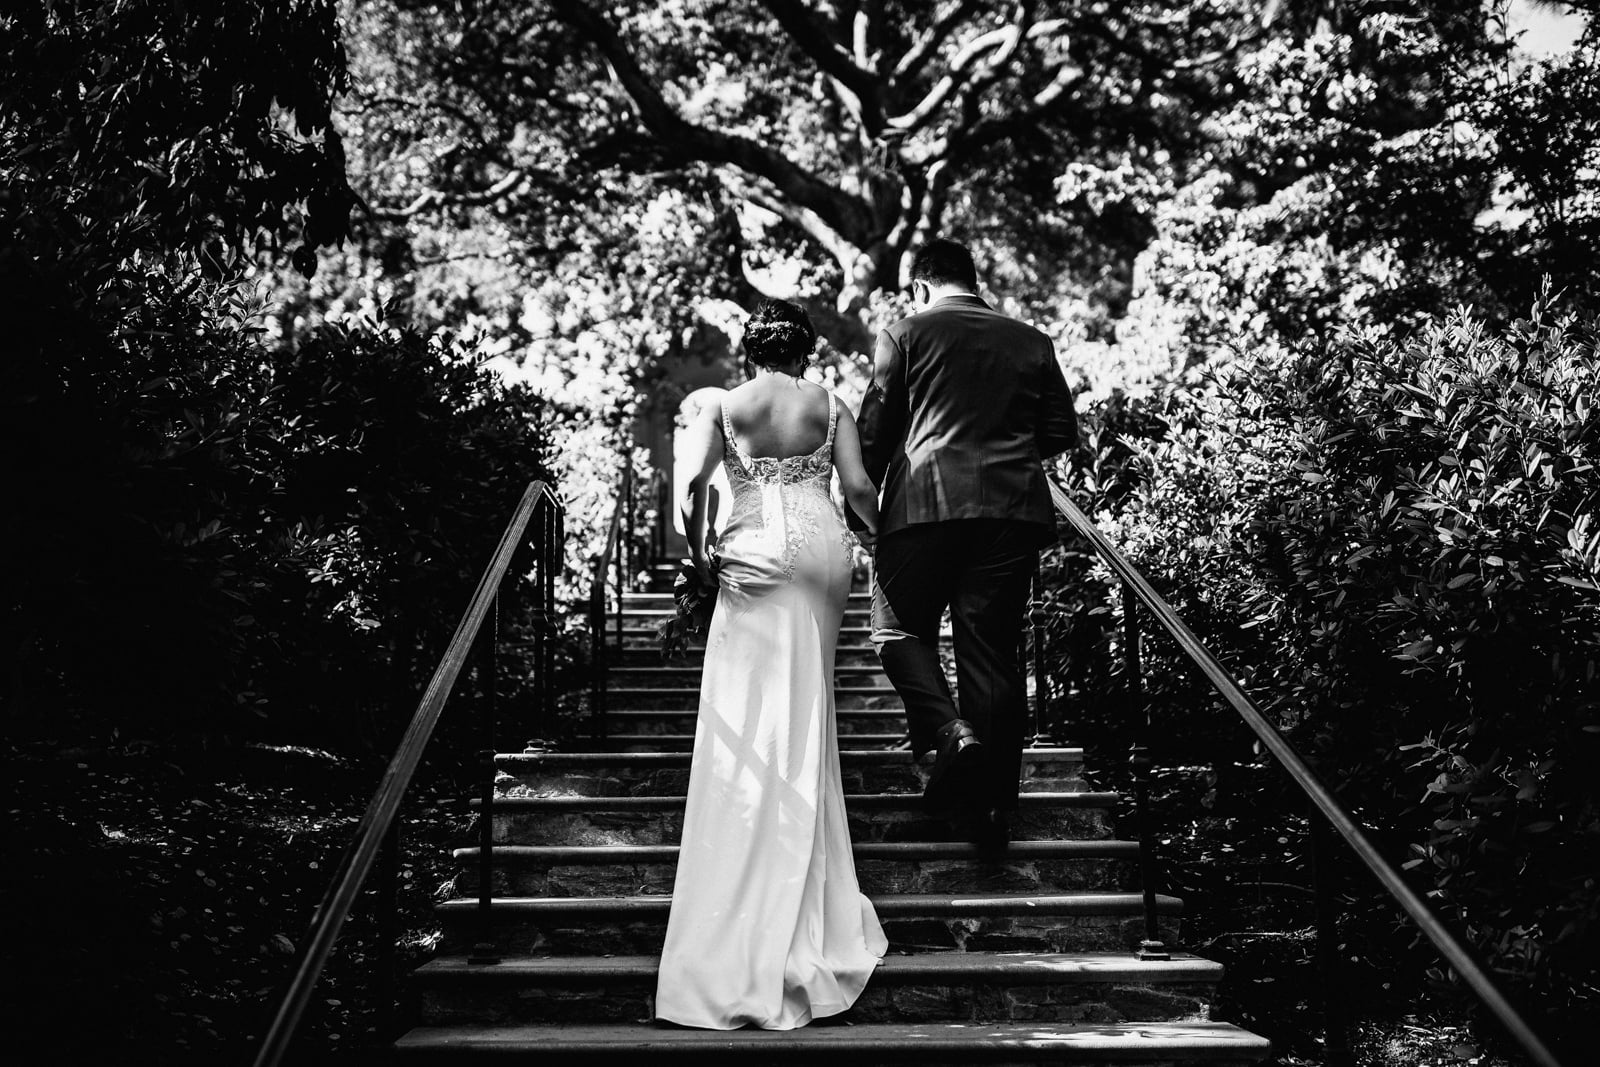 Bride and groom walking up the steps